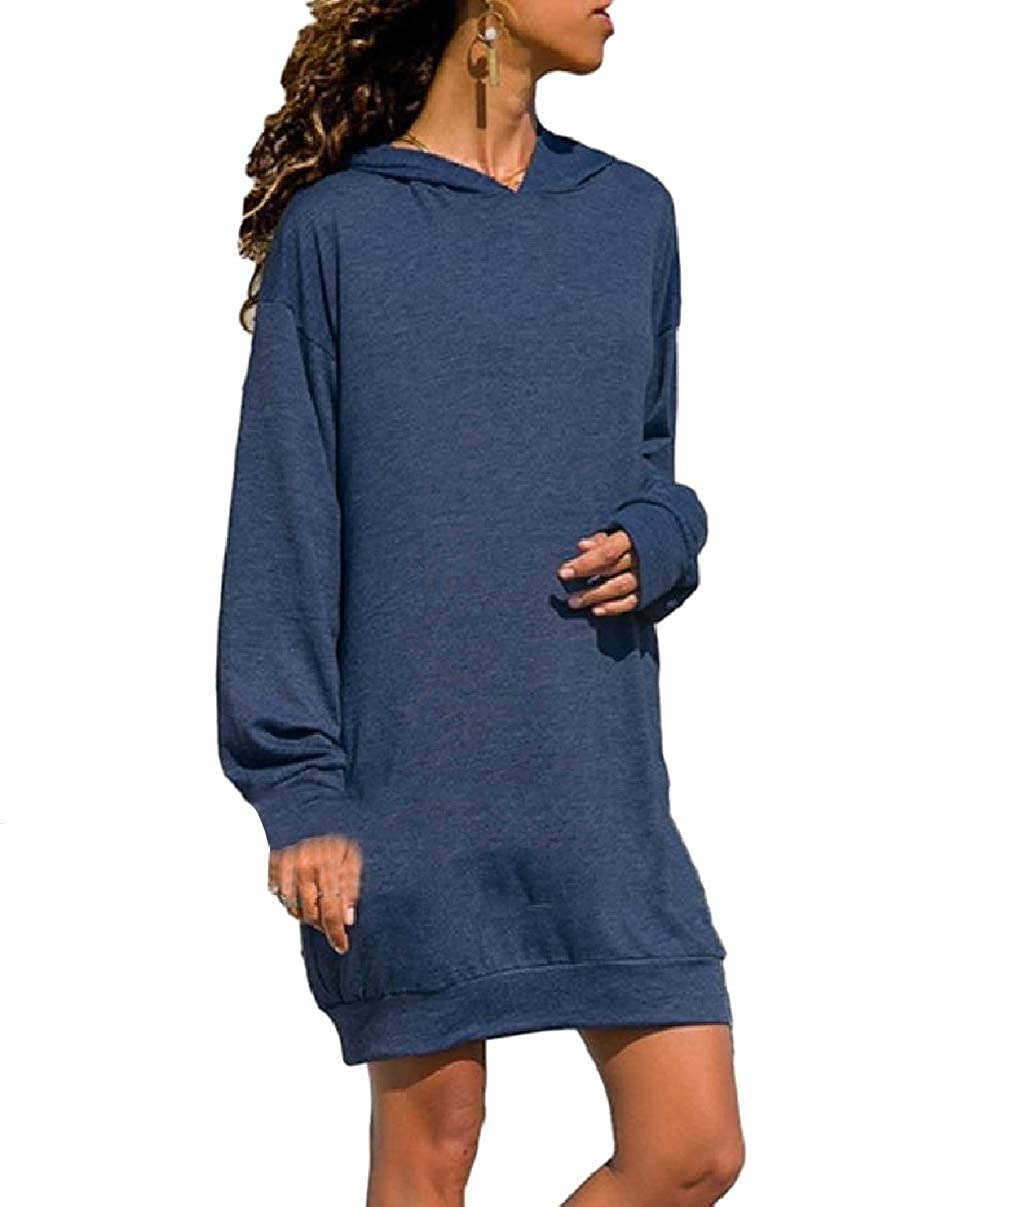 RDHOPE-Women Leisure Hood Plus Size Dresses Thigh-Length Pullover Top